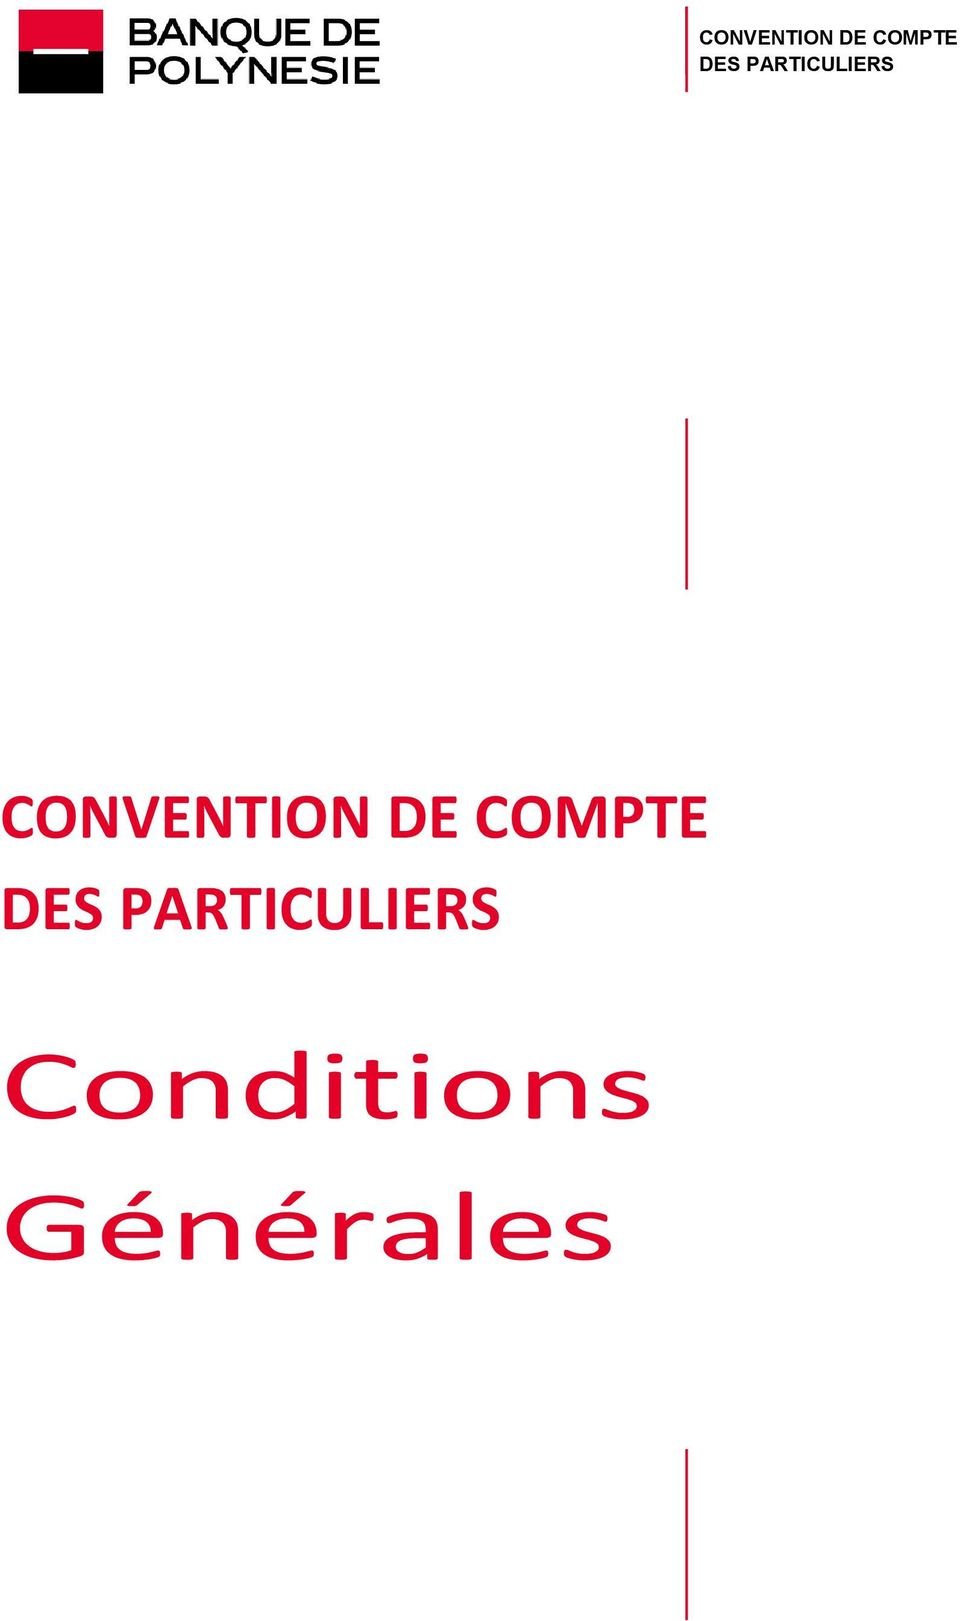 PARTICULIERS Conditions